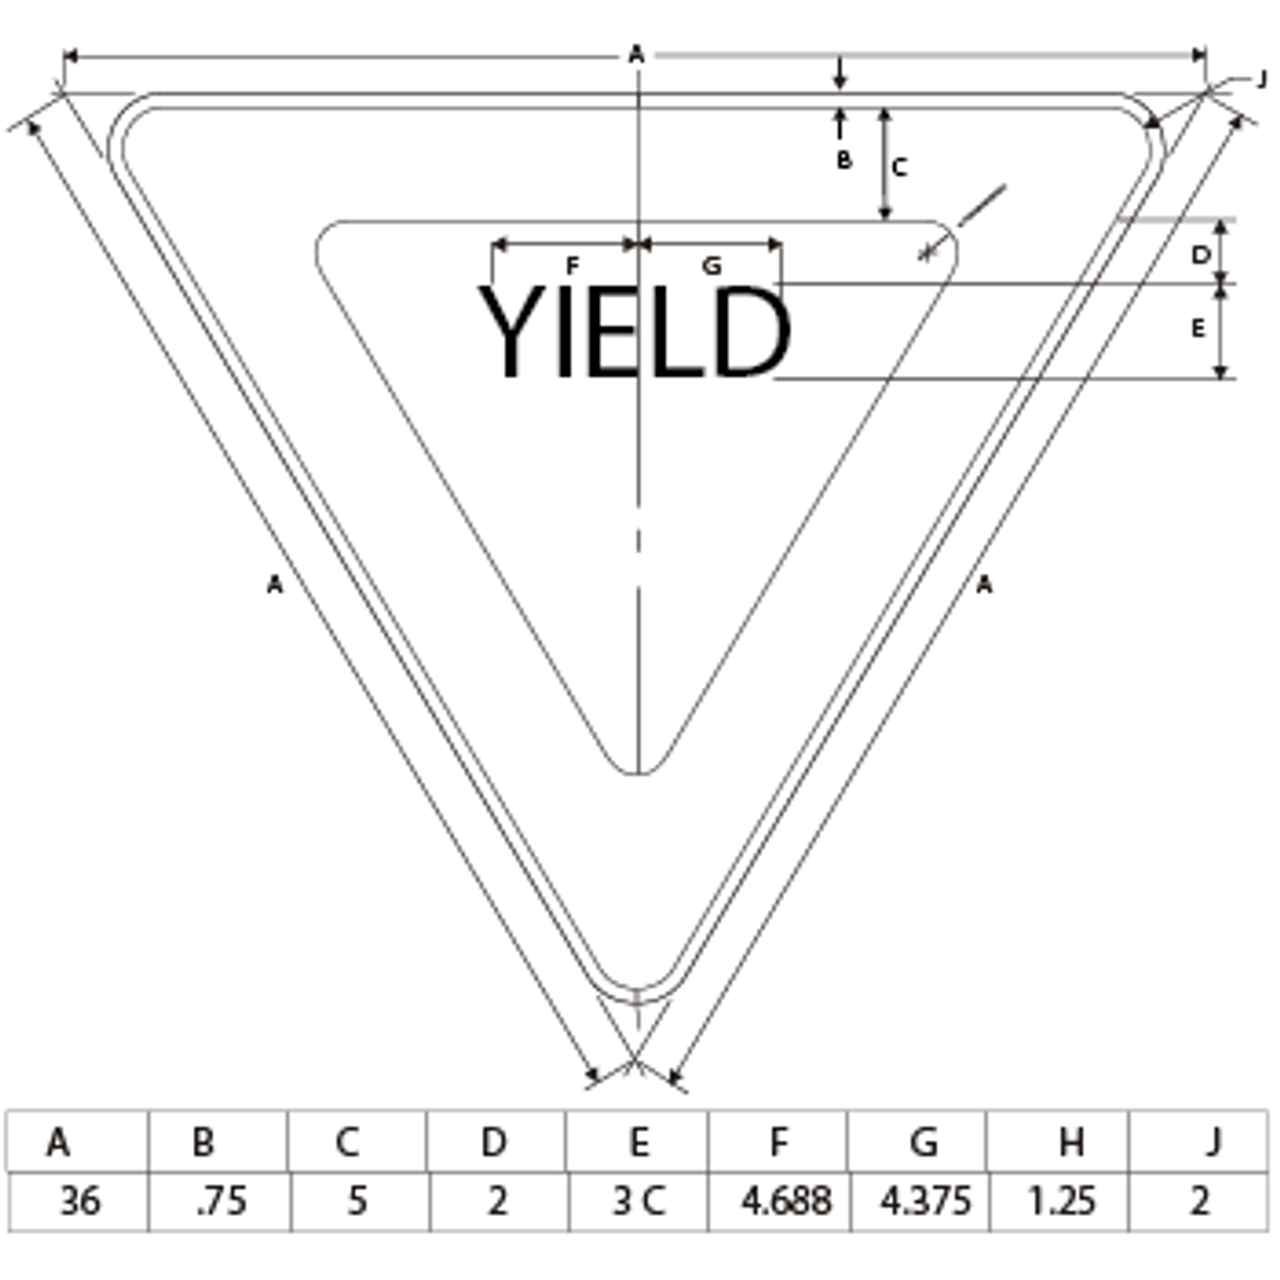 Yield sign print dimensions